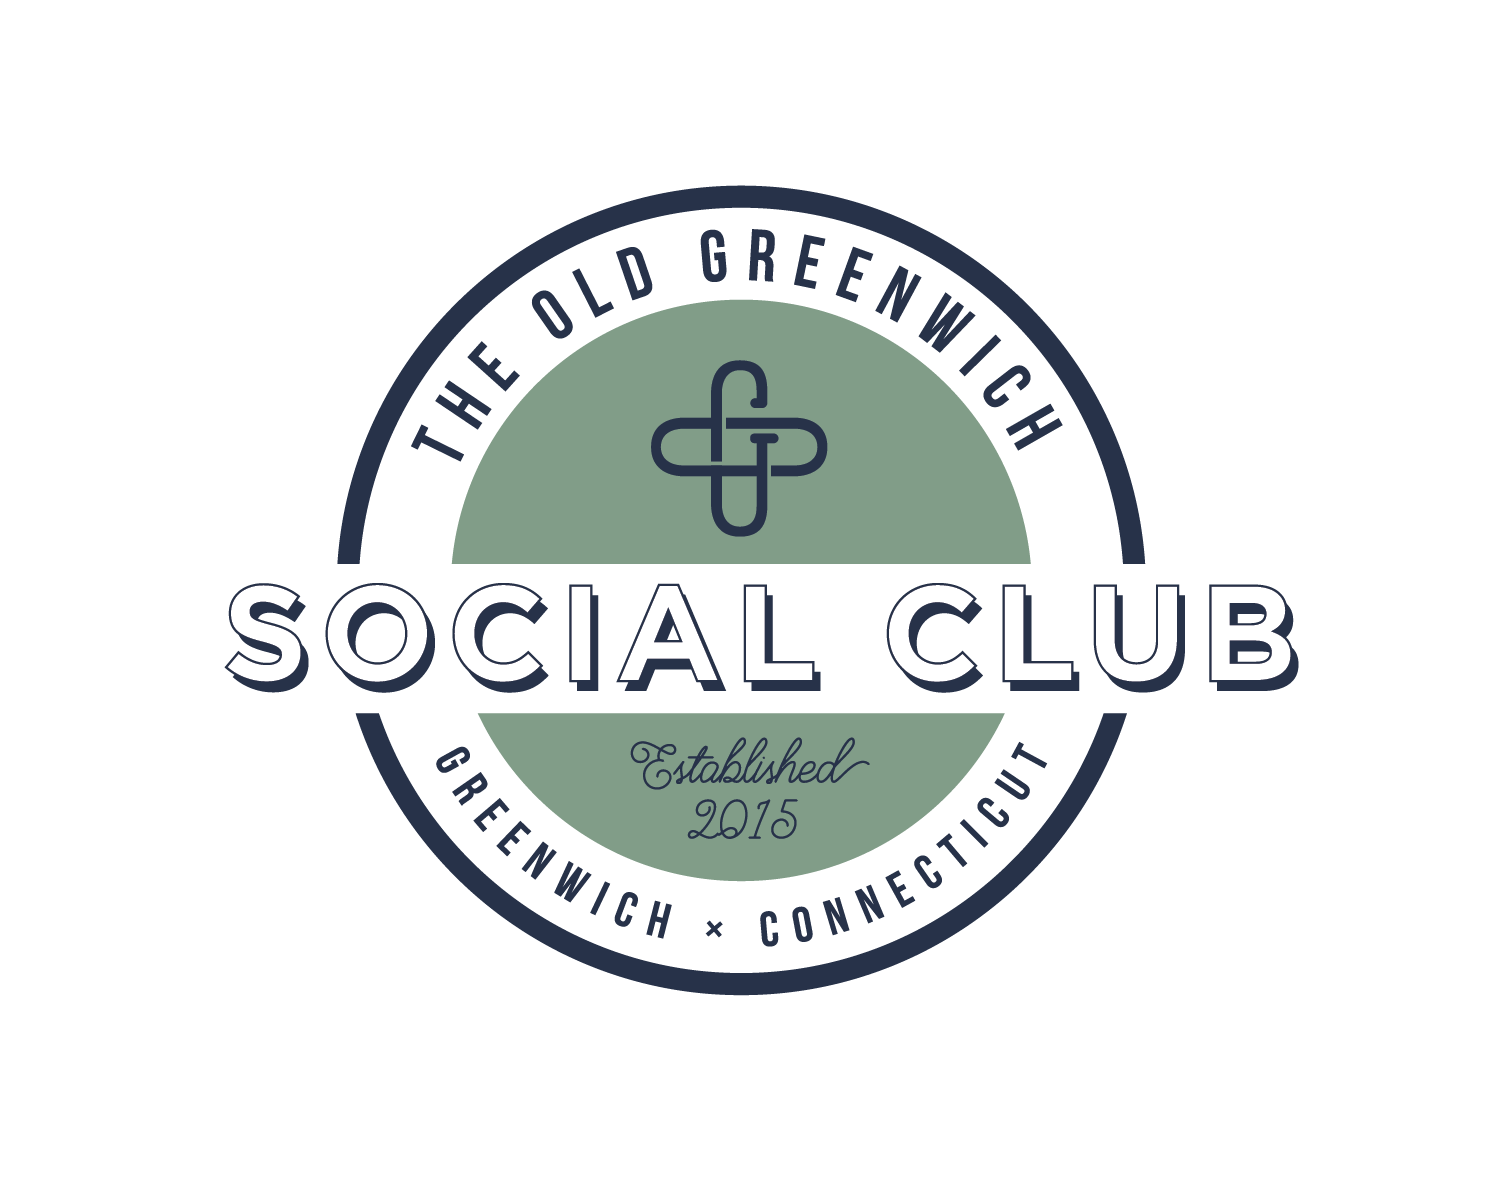 The Old Greenwich Social Club